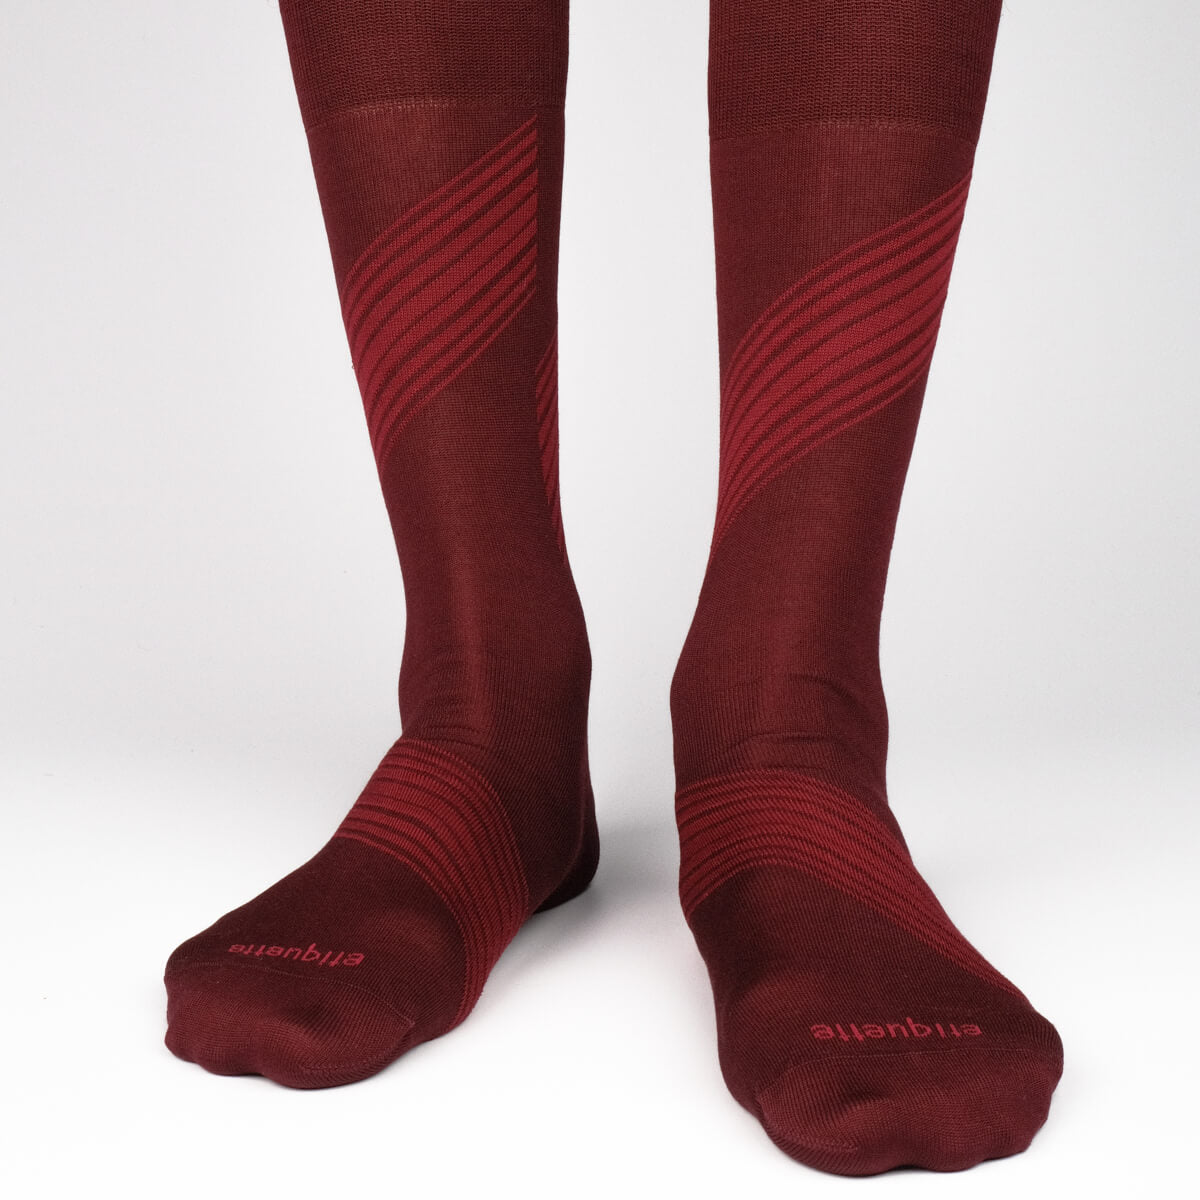 Mens Socks - Shanghai Stripes - Bordeaux⎪Etiquette Clothiers